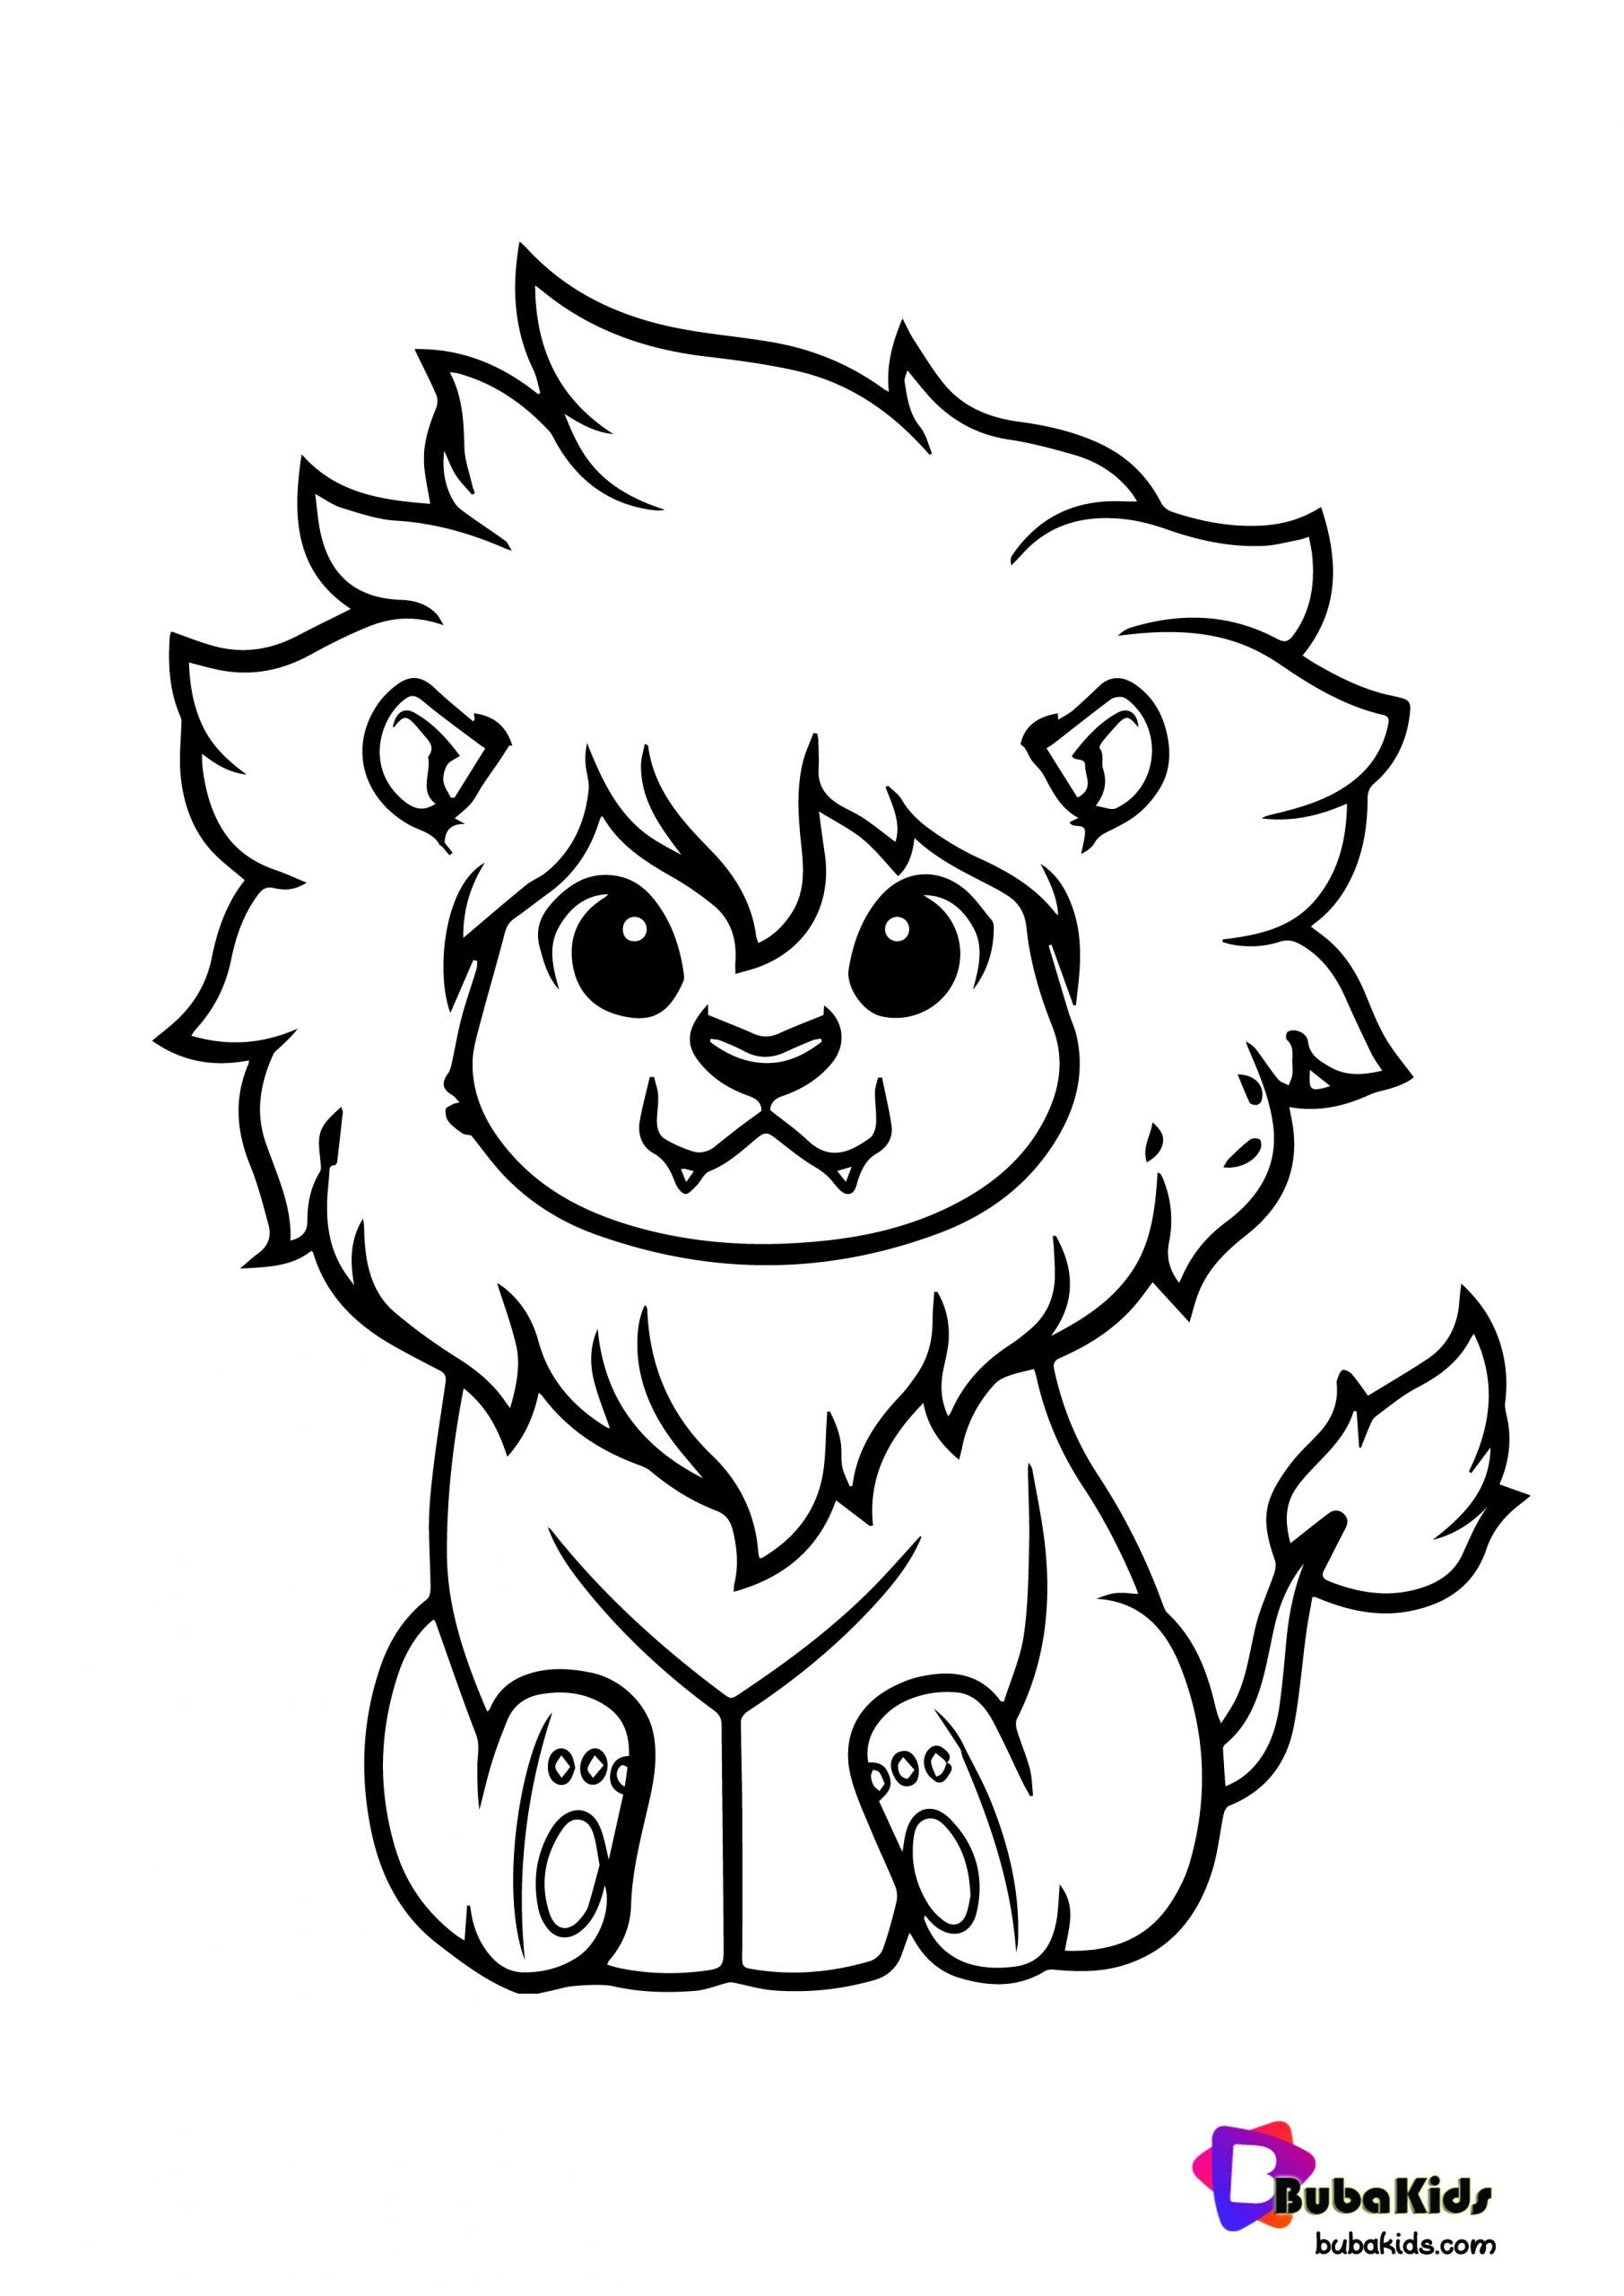 Cute Lion King Coloring Page Collection Of Animal Coloring Pages For Teenage Printable That You Can Download An In 2020 Cute Lion Coloring Pages Animal Coloring Pages